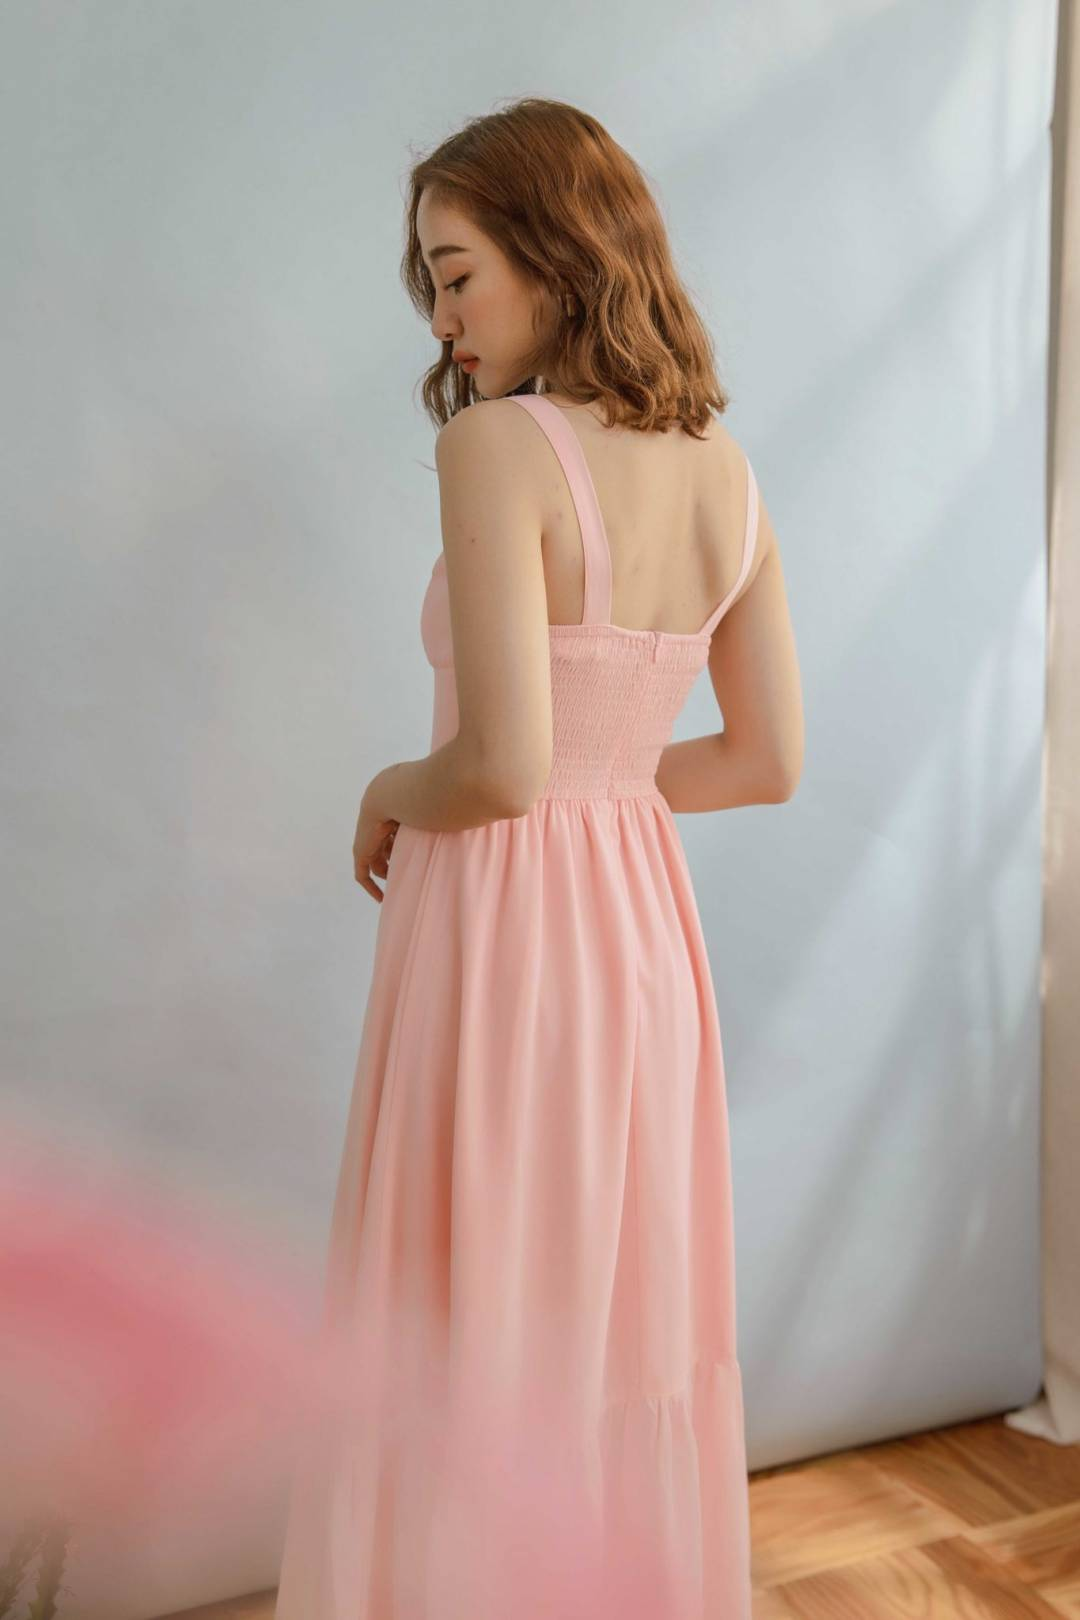 Reformation Dress in Pink